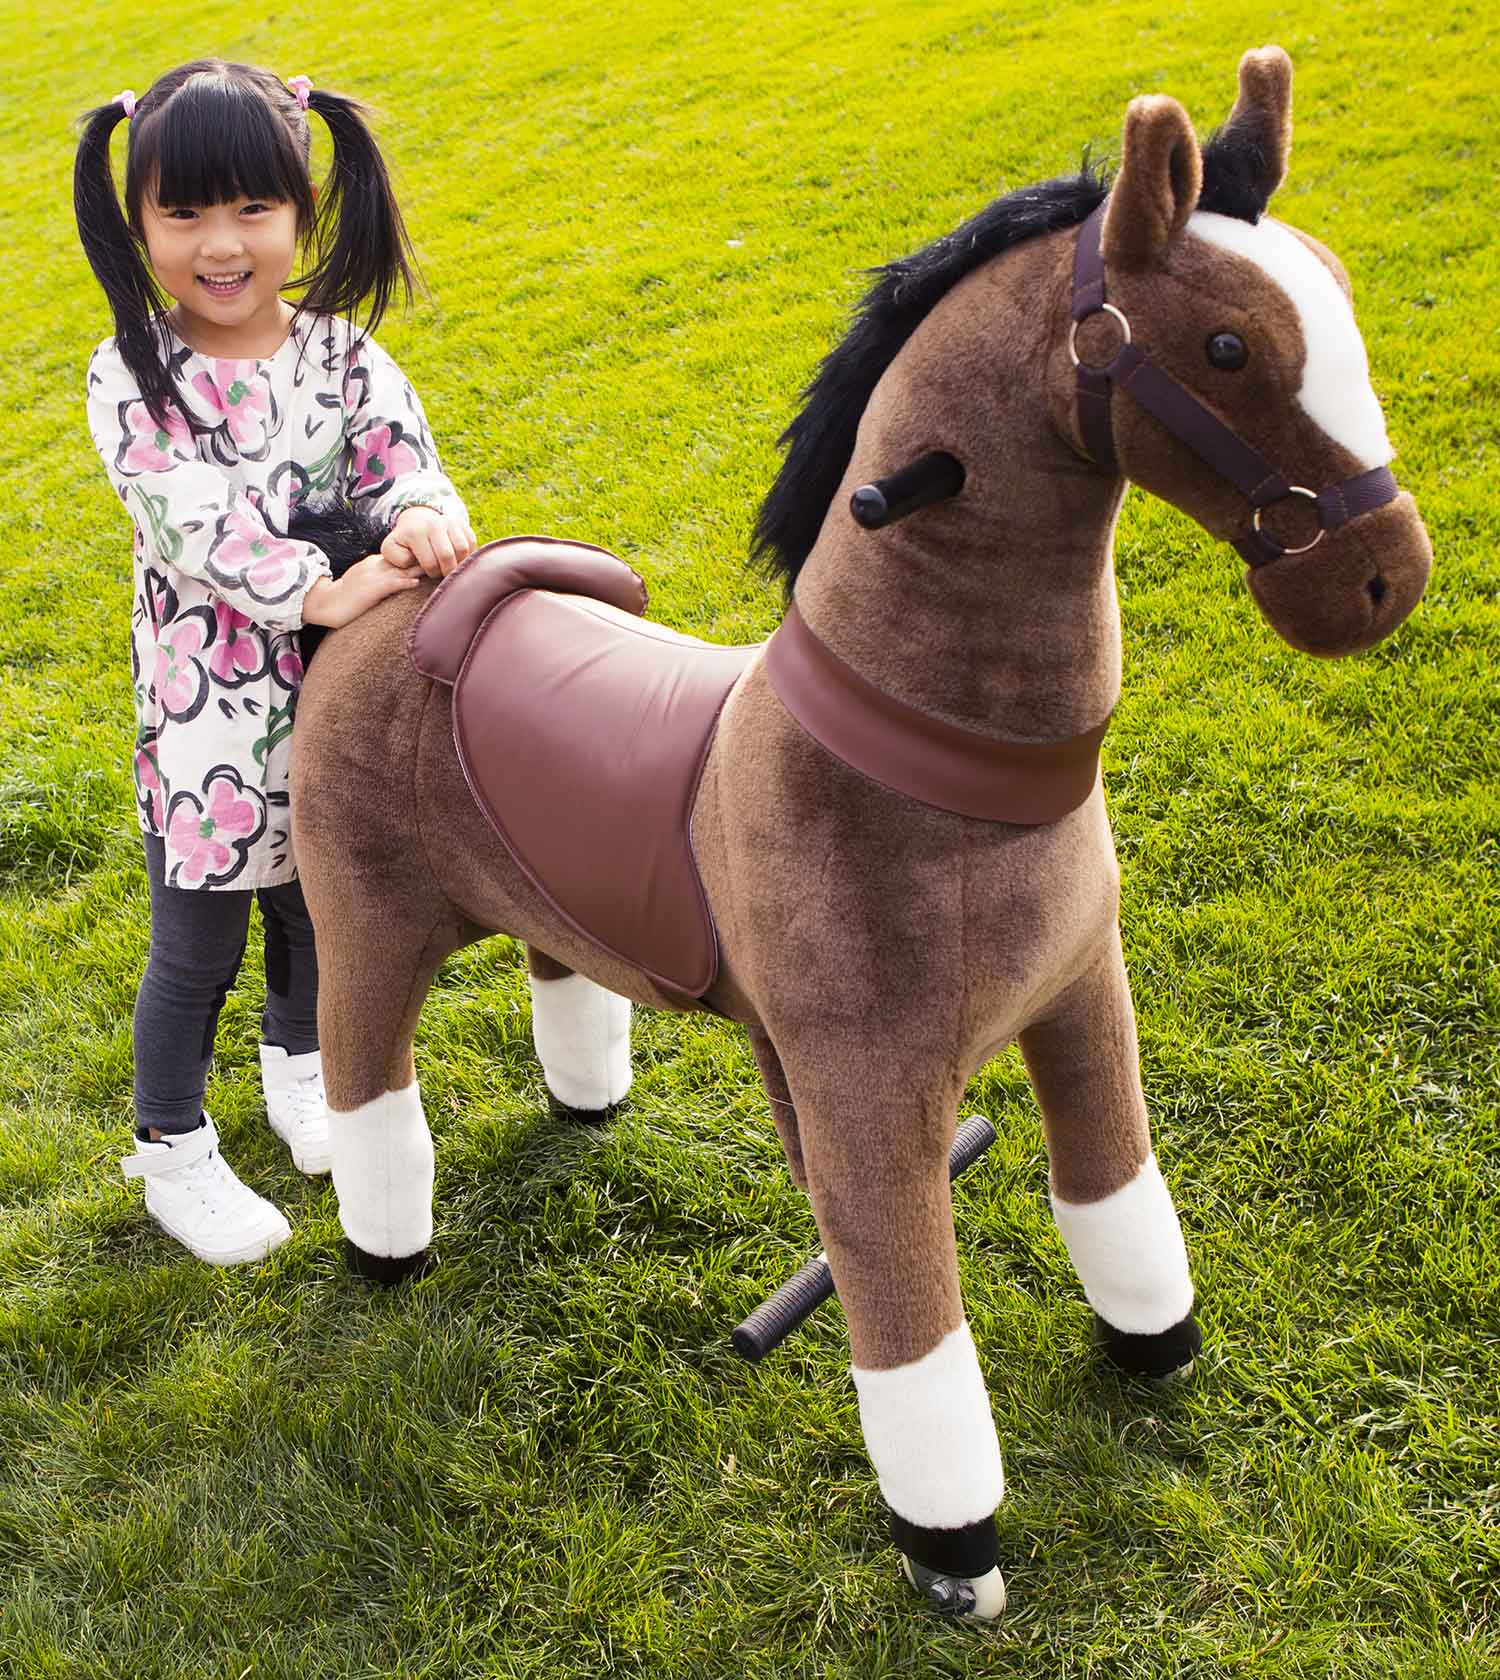 riding horse on wheels for kid and adult walking unicorn toy